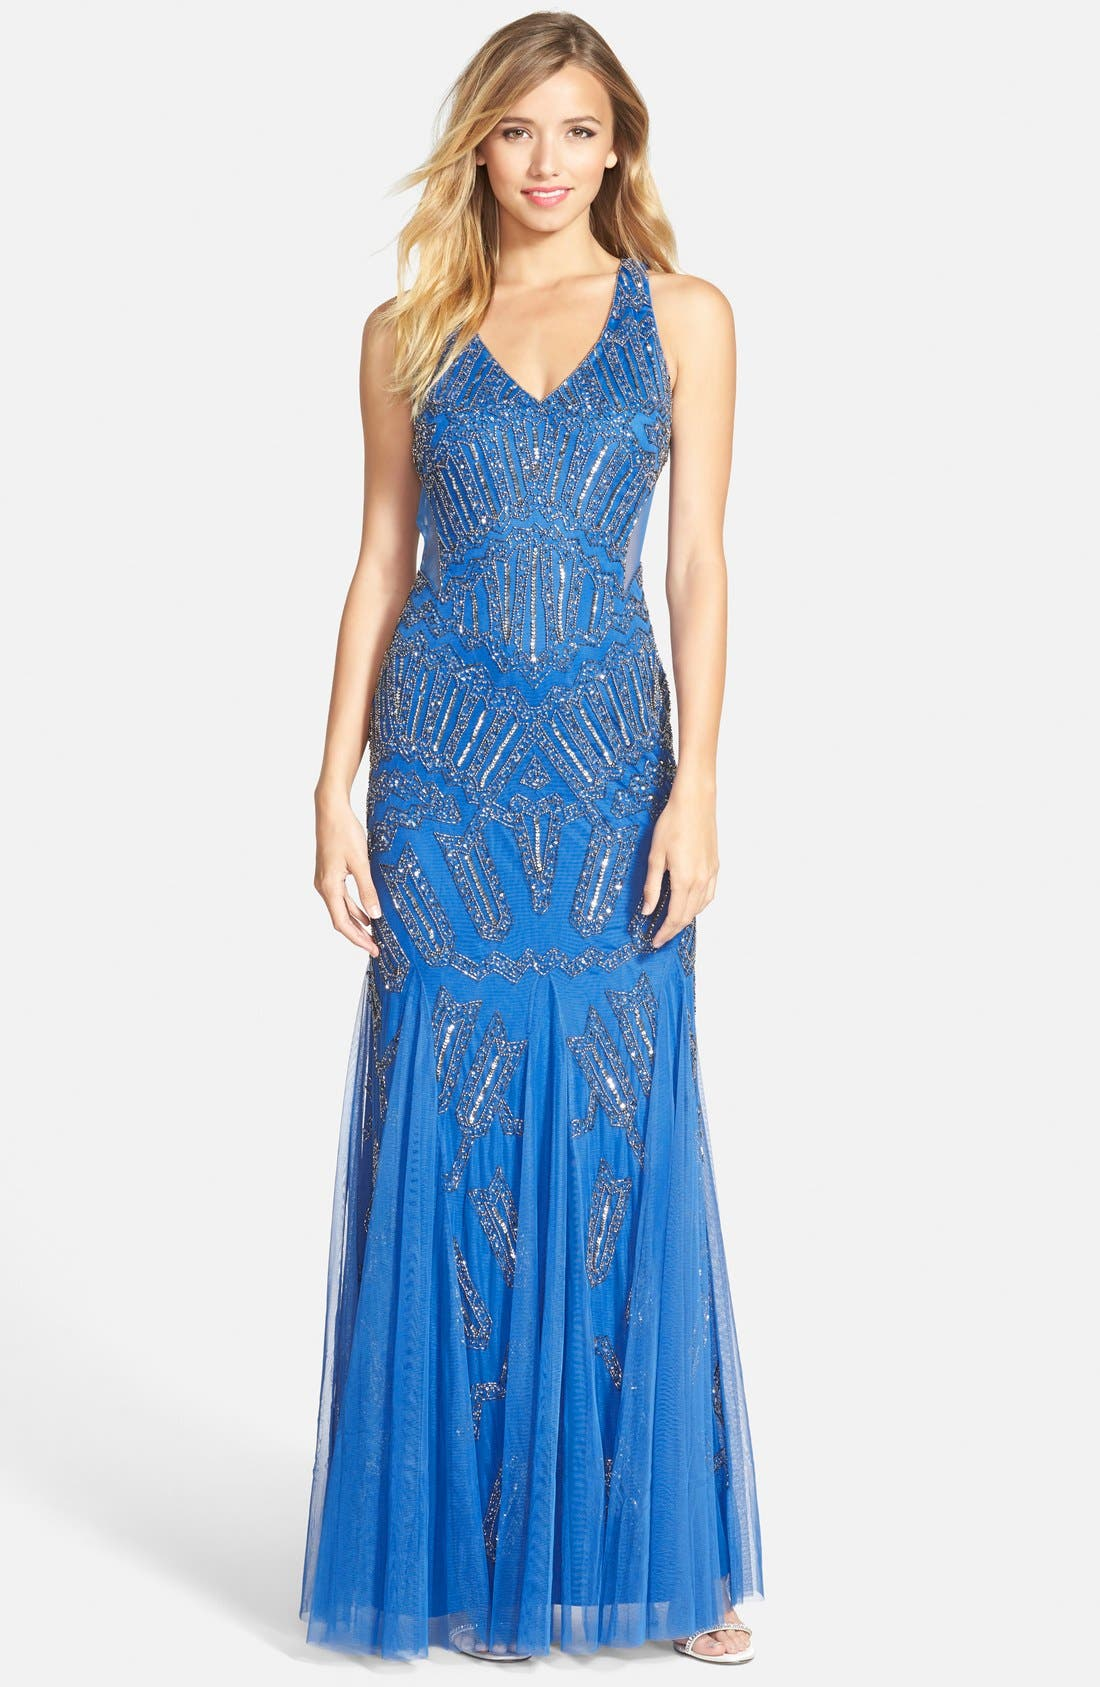 Alternate Image 1 Selected - Adrianna Papell Beaded Mesh Inset Gown